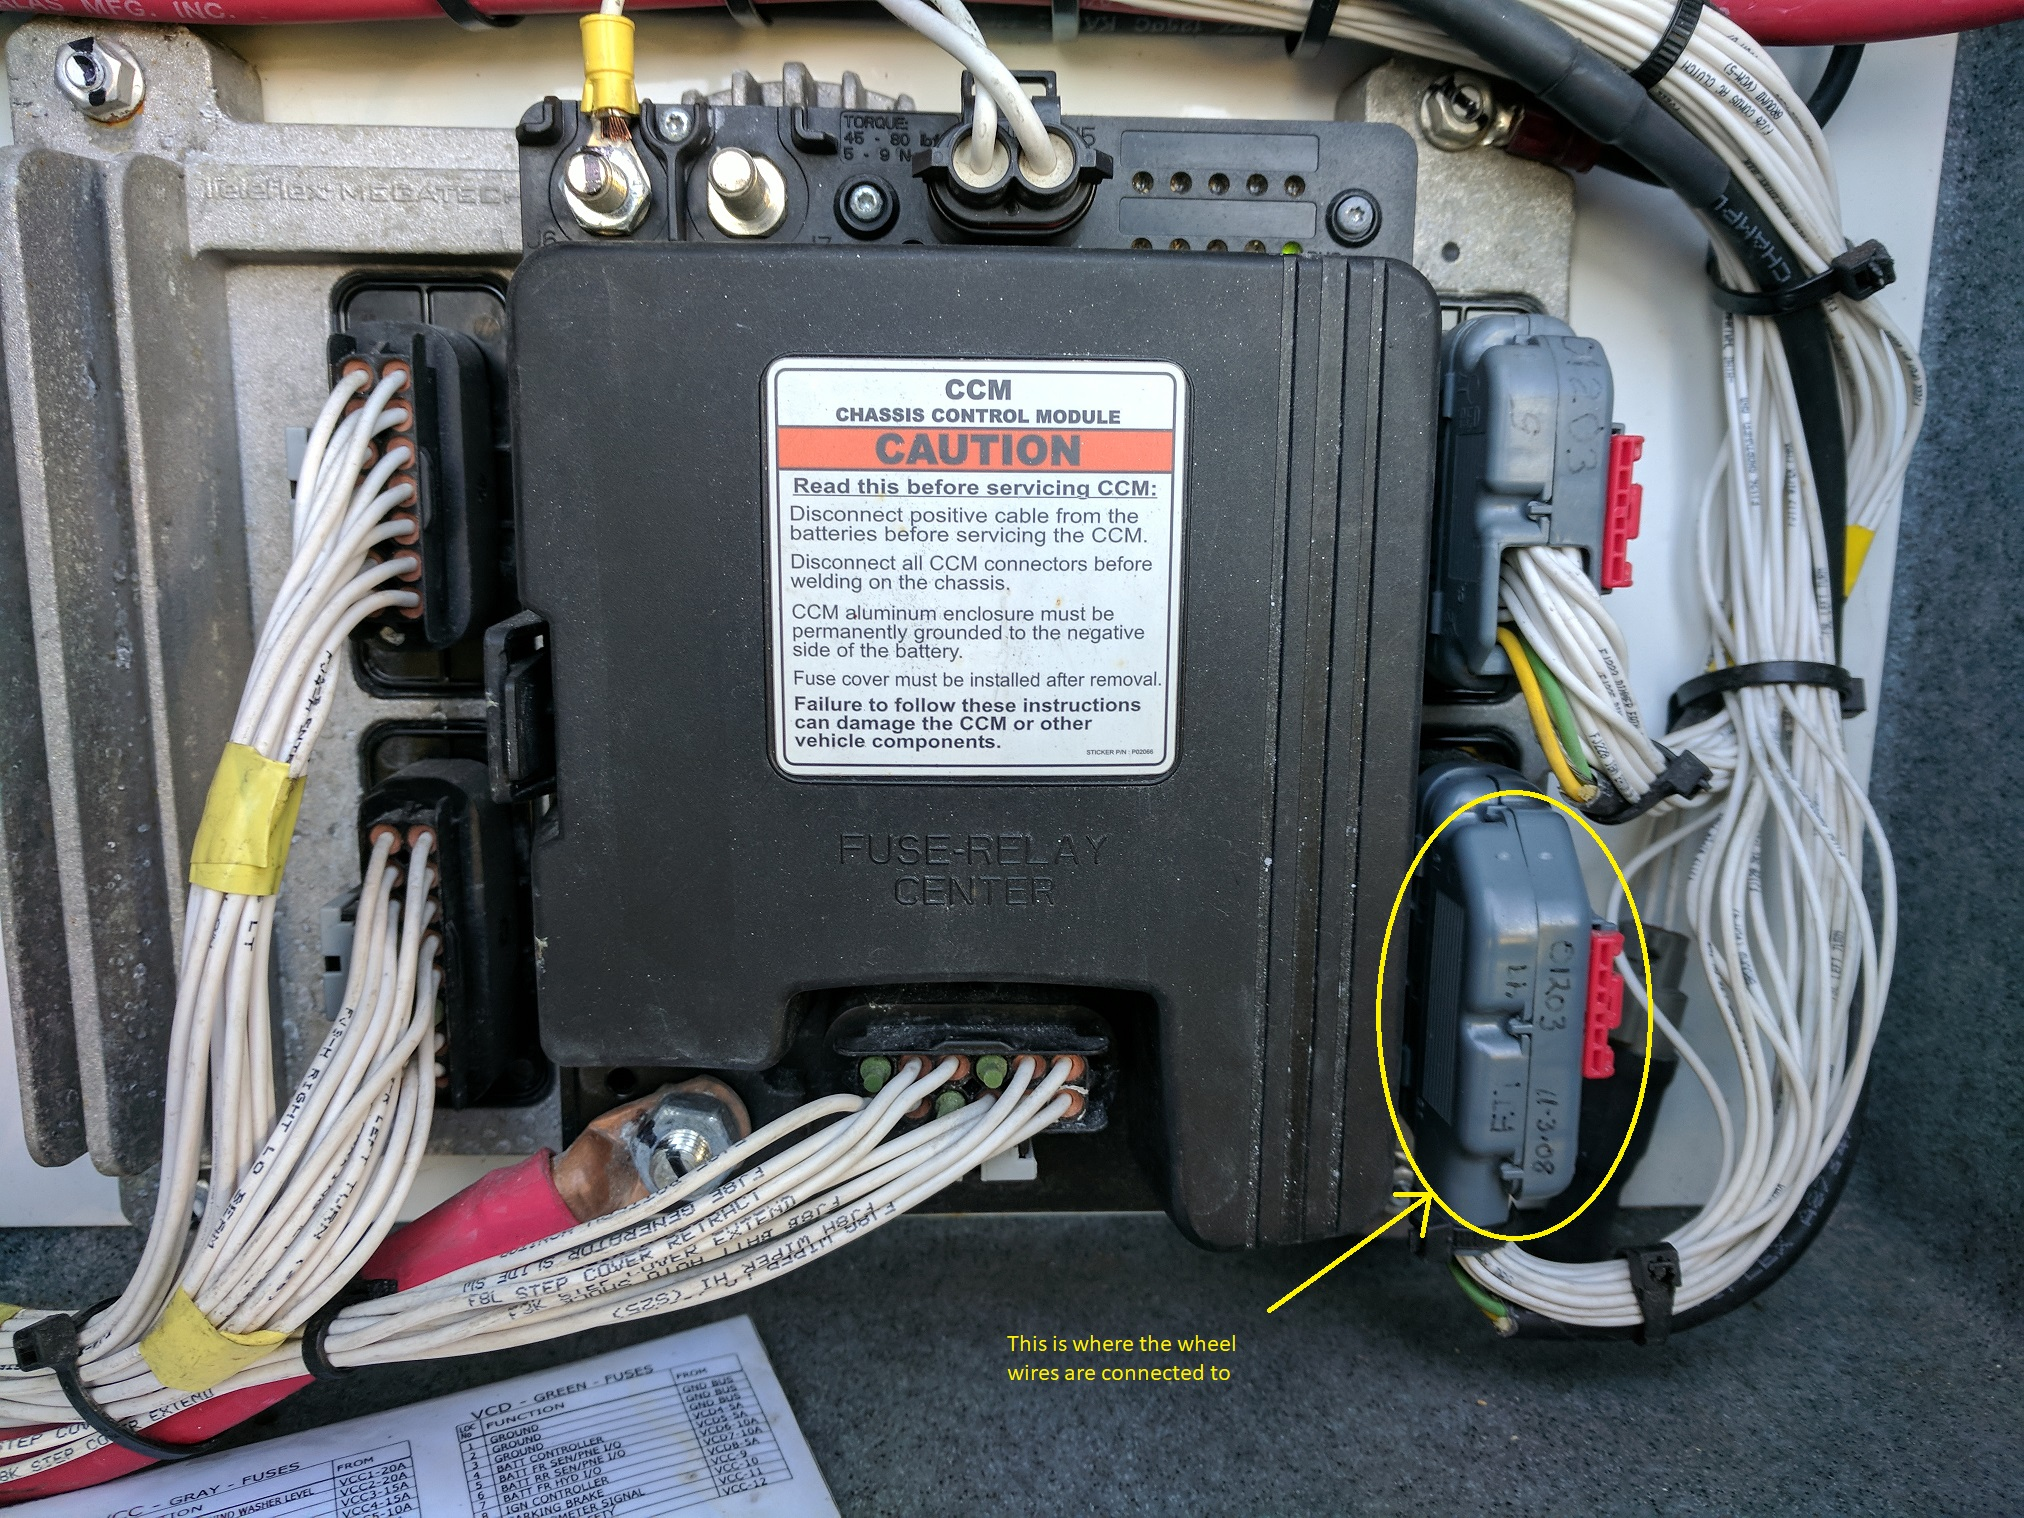 VIP(smart) Wheel Wiring - Electrical - FMCA RV Forums – A Community of RVersFMCA Forums